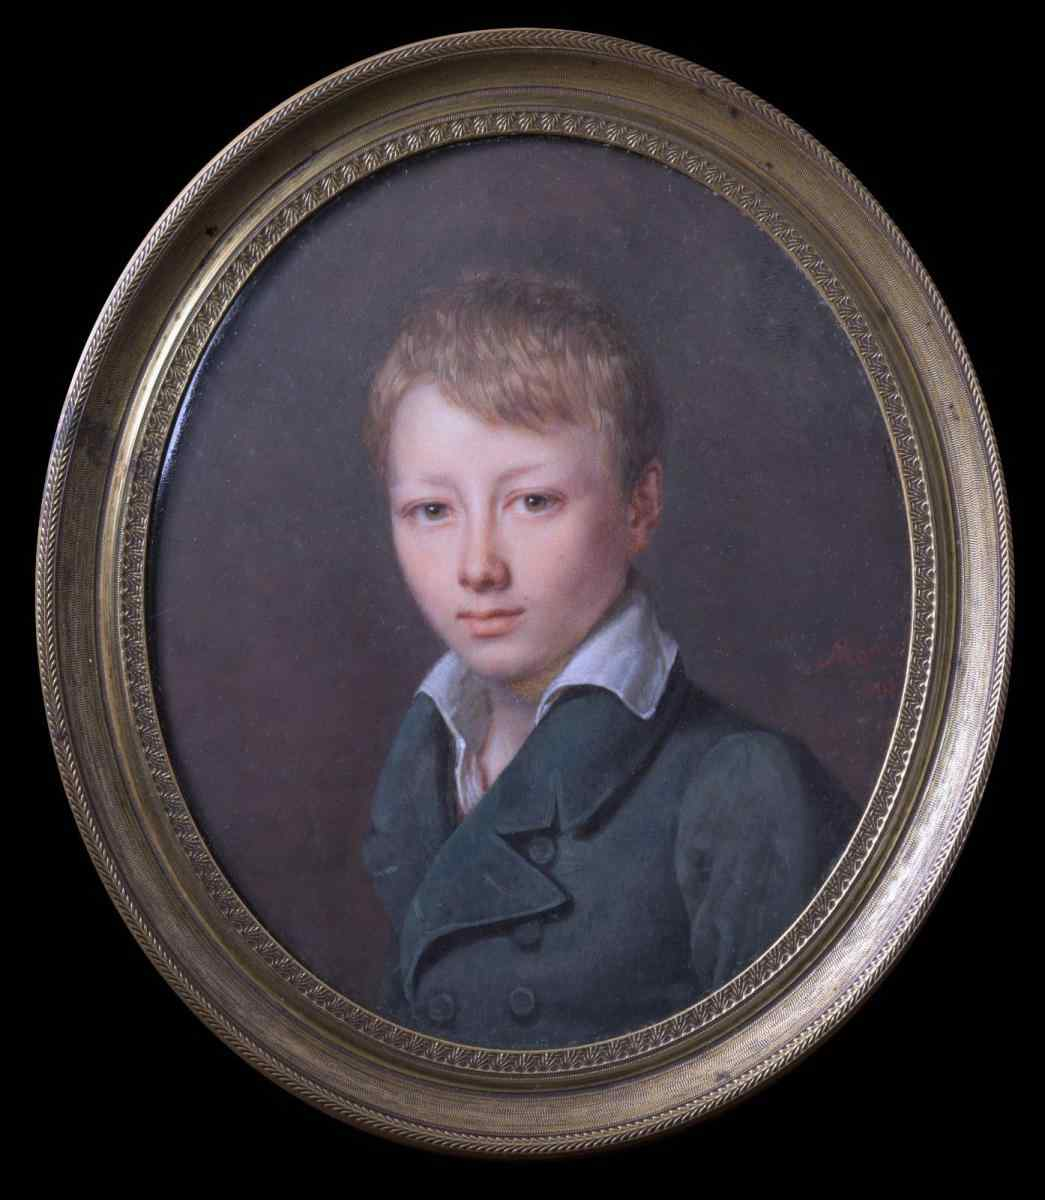 Jeanne Maricot, Portrait of a Boy, miniature